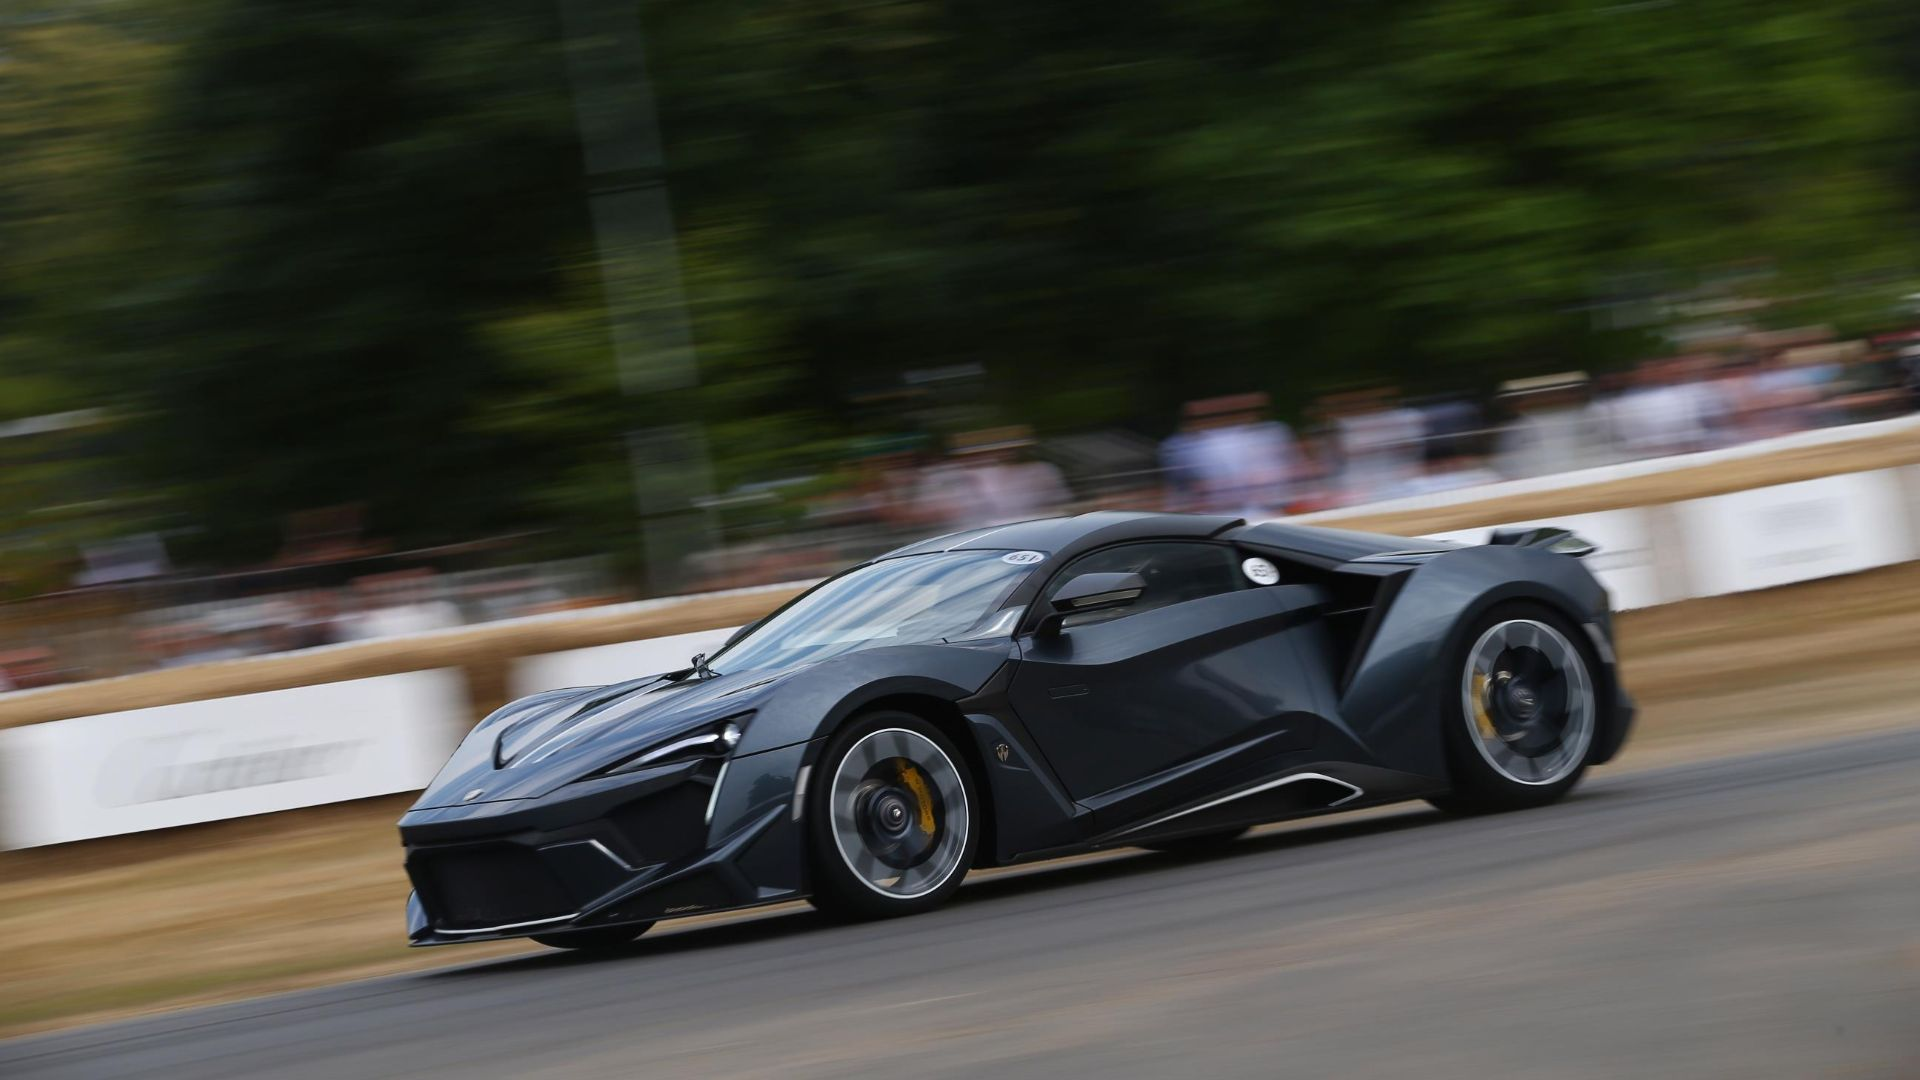 2017 W Motors Fenyr Supersport – 246mph